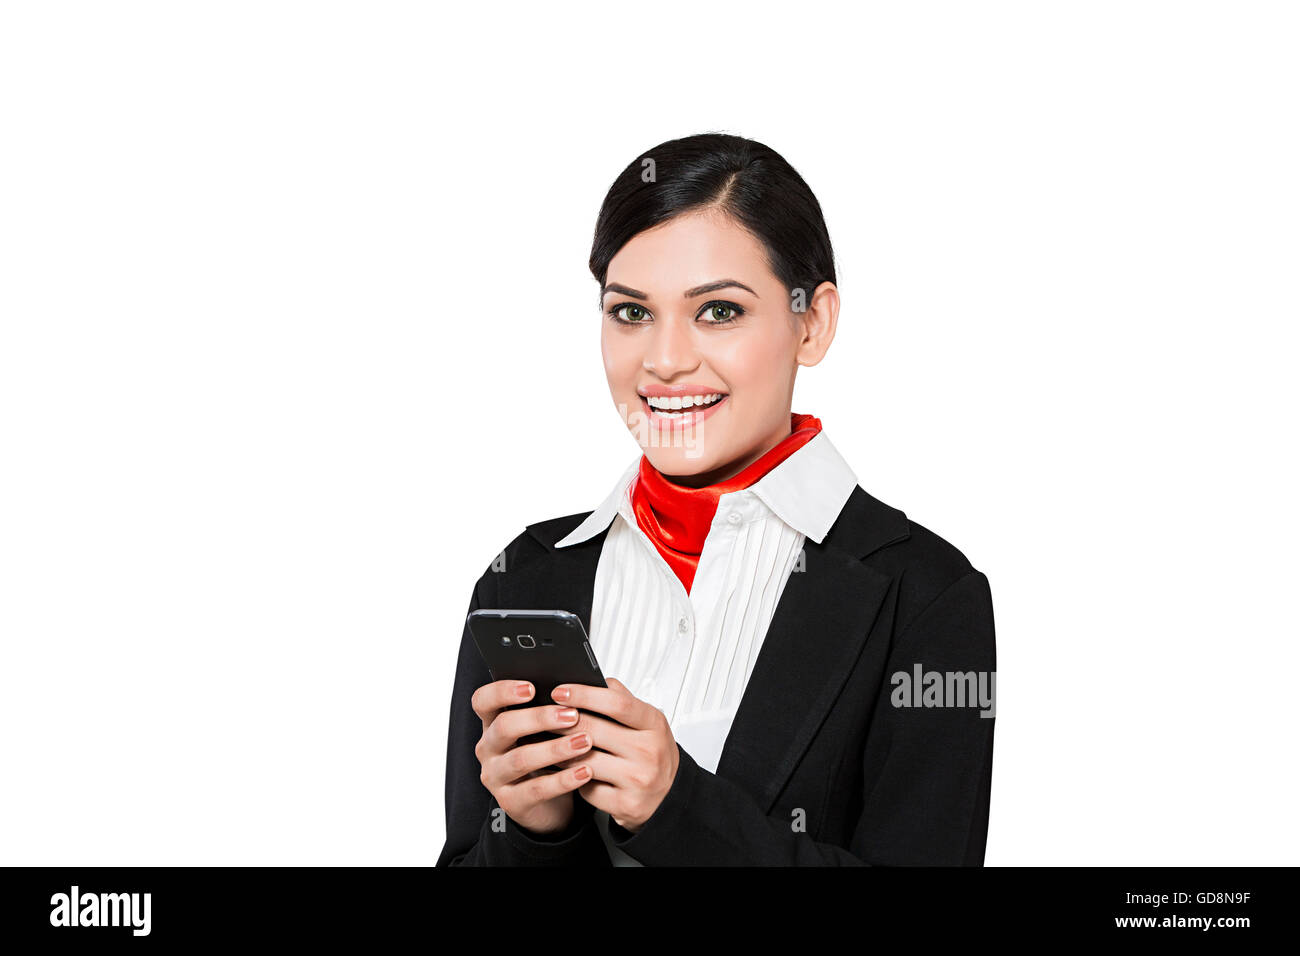 1 Indian Adult Woman Air Hostess Dialing Mobile Phone - Stock Image